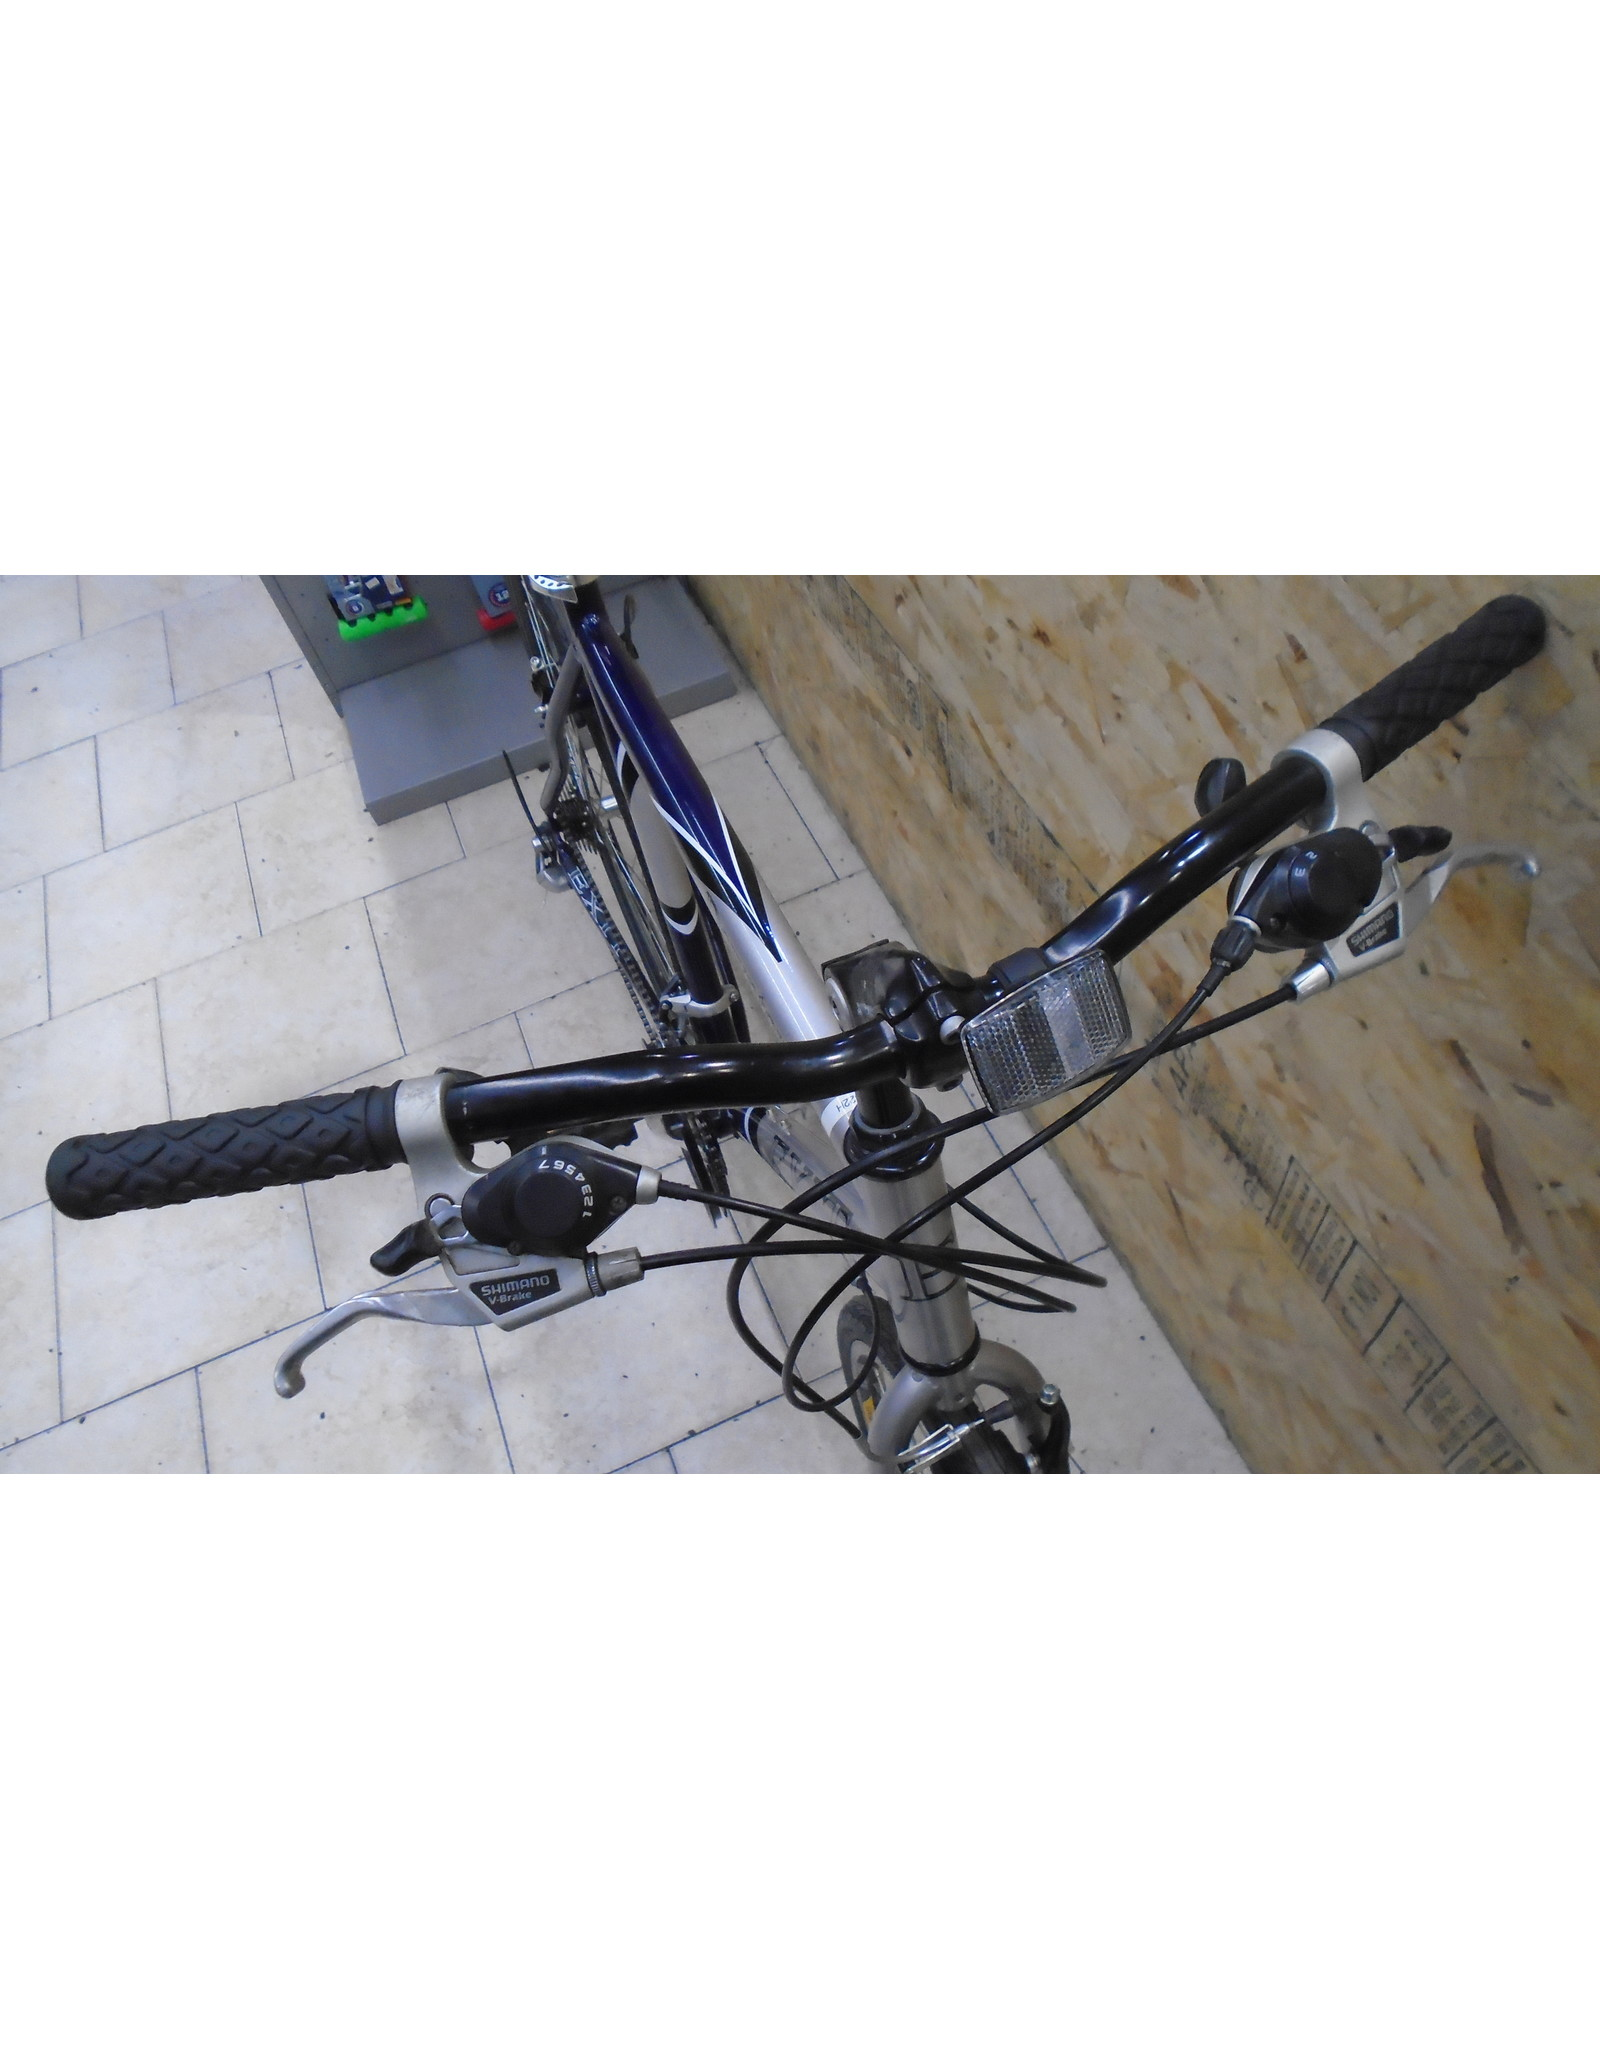 "Copy of Vélo usagé de montagne Trek 16.5"" - 10325"